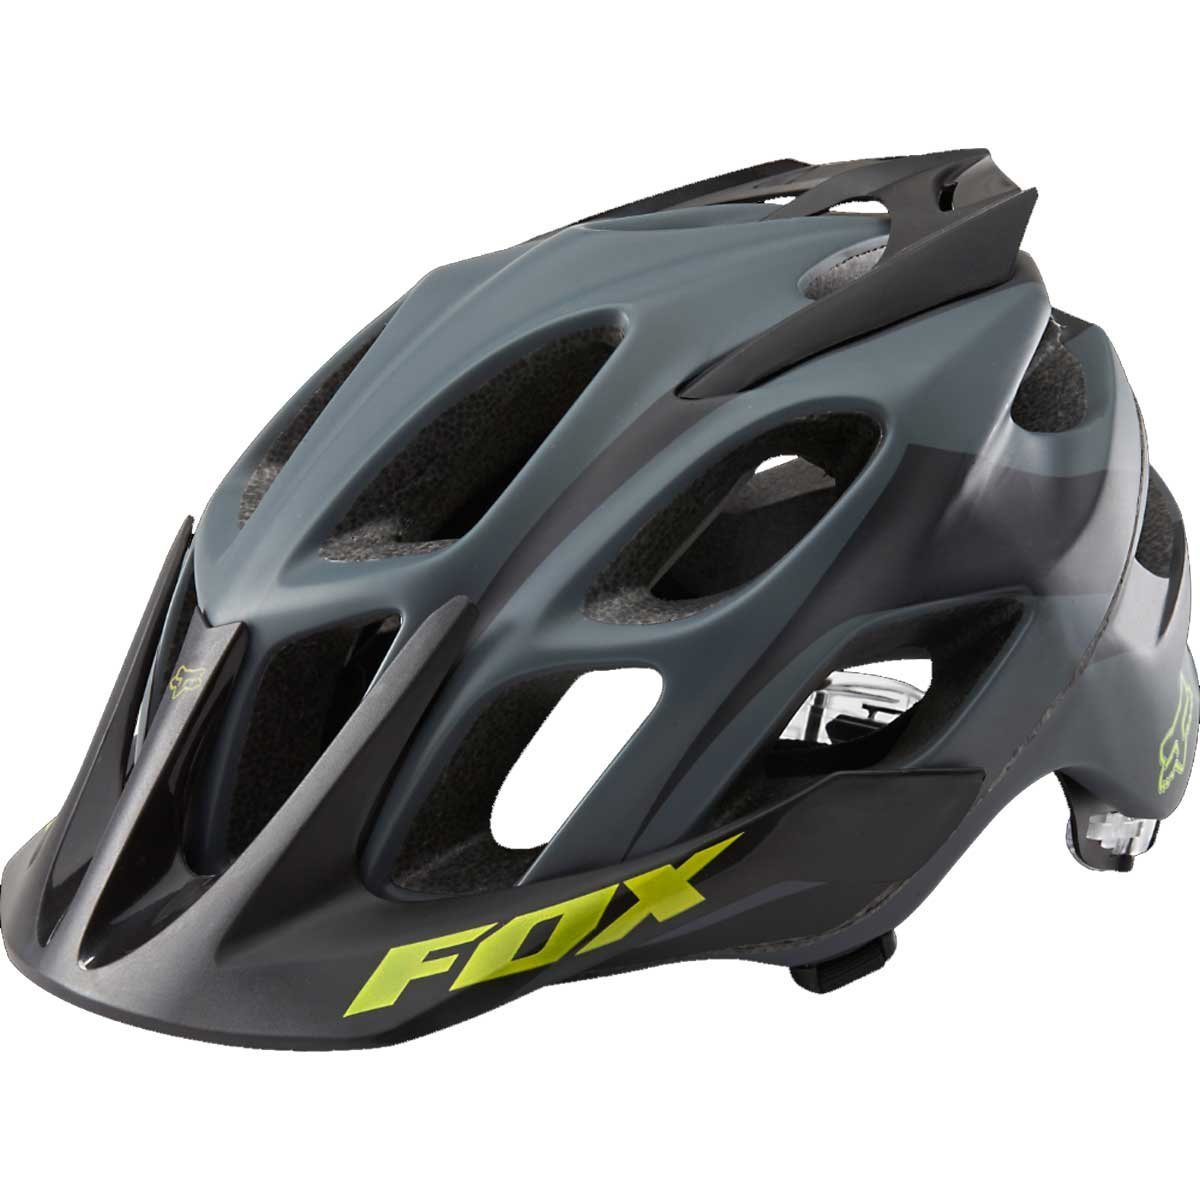 Medium Fox Racing Bicycle Helmets